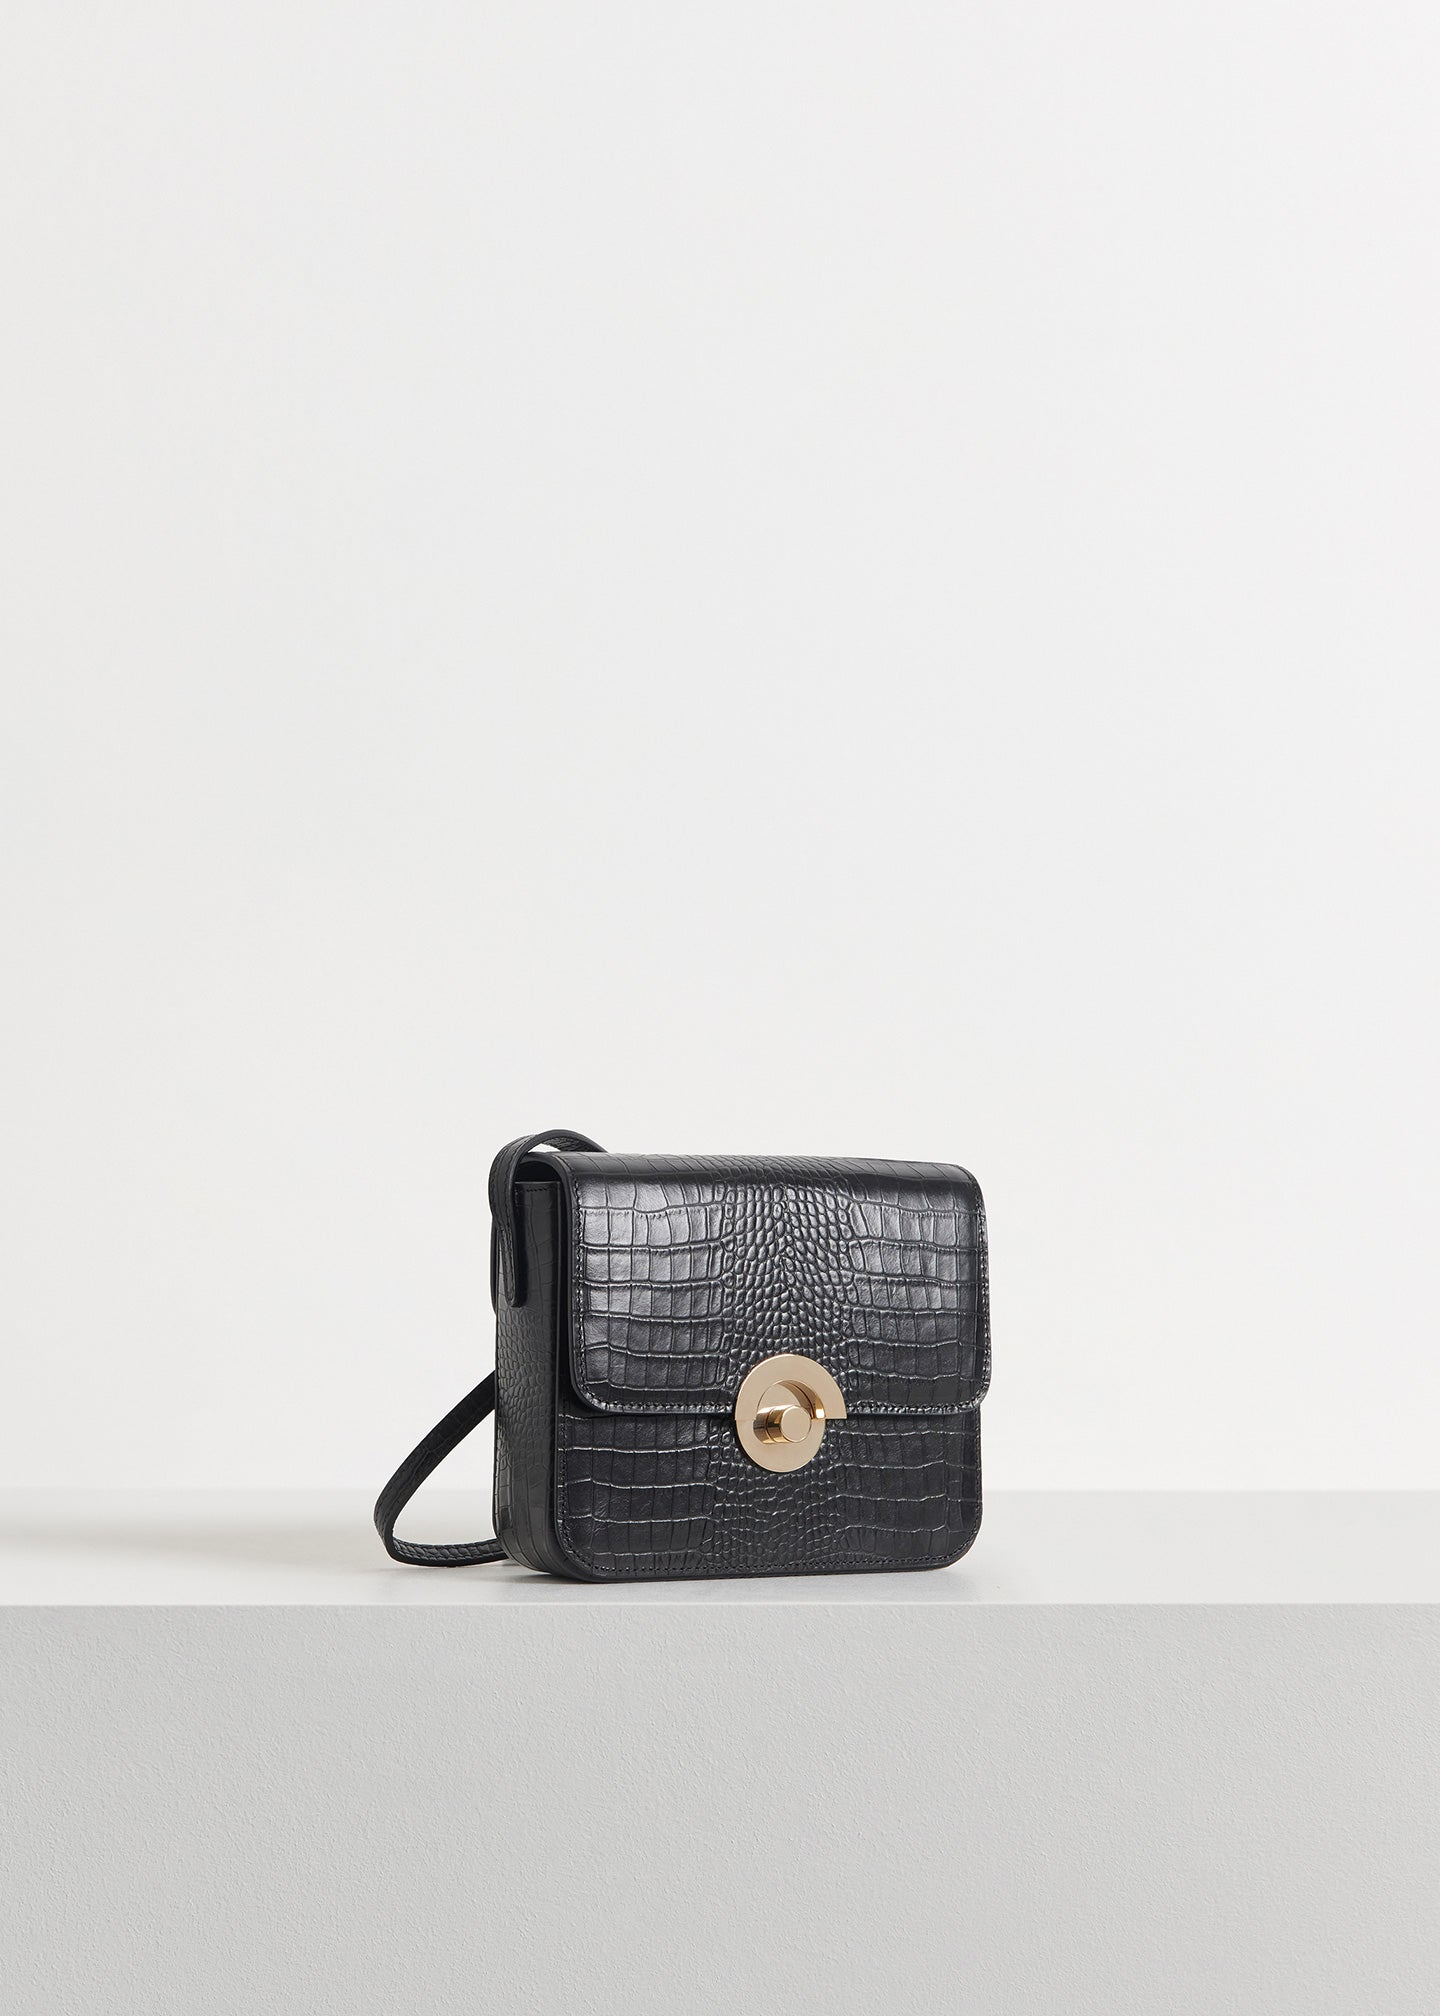 CO - Small Box Bag in Embossed Leather - Black